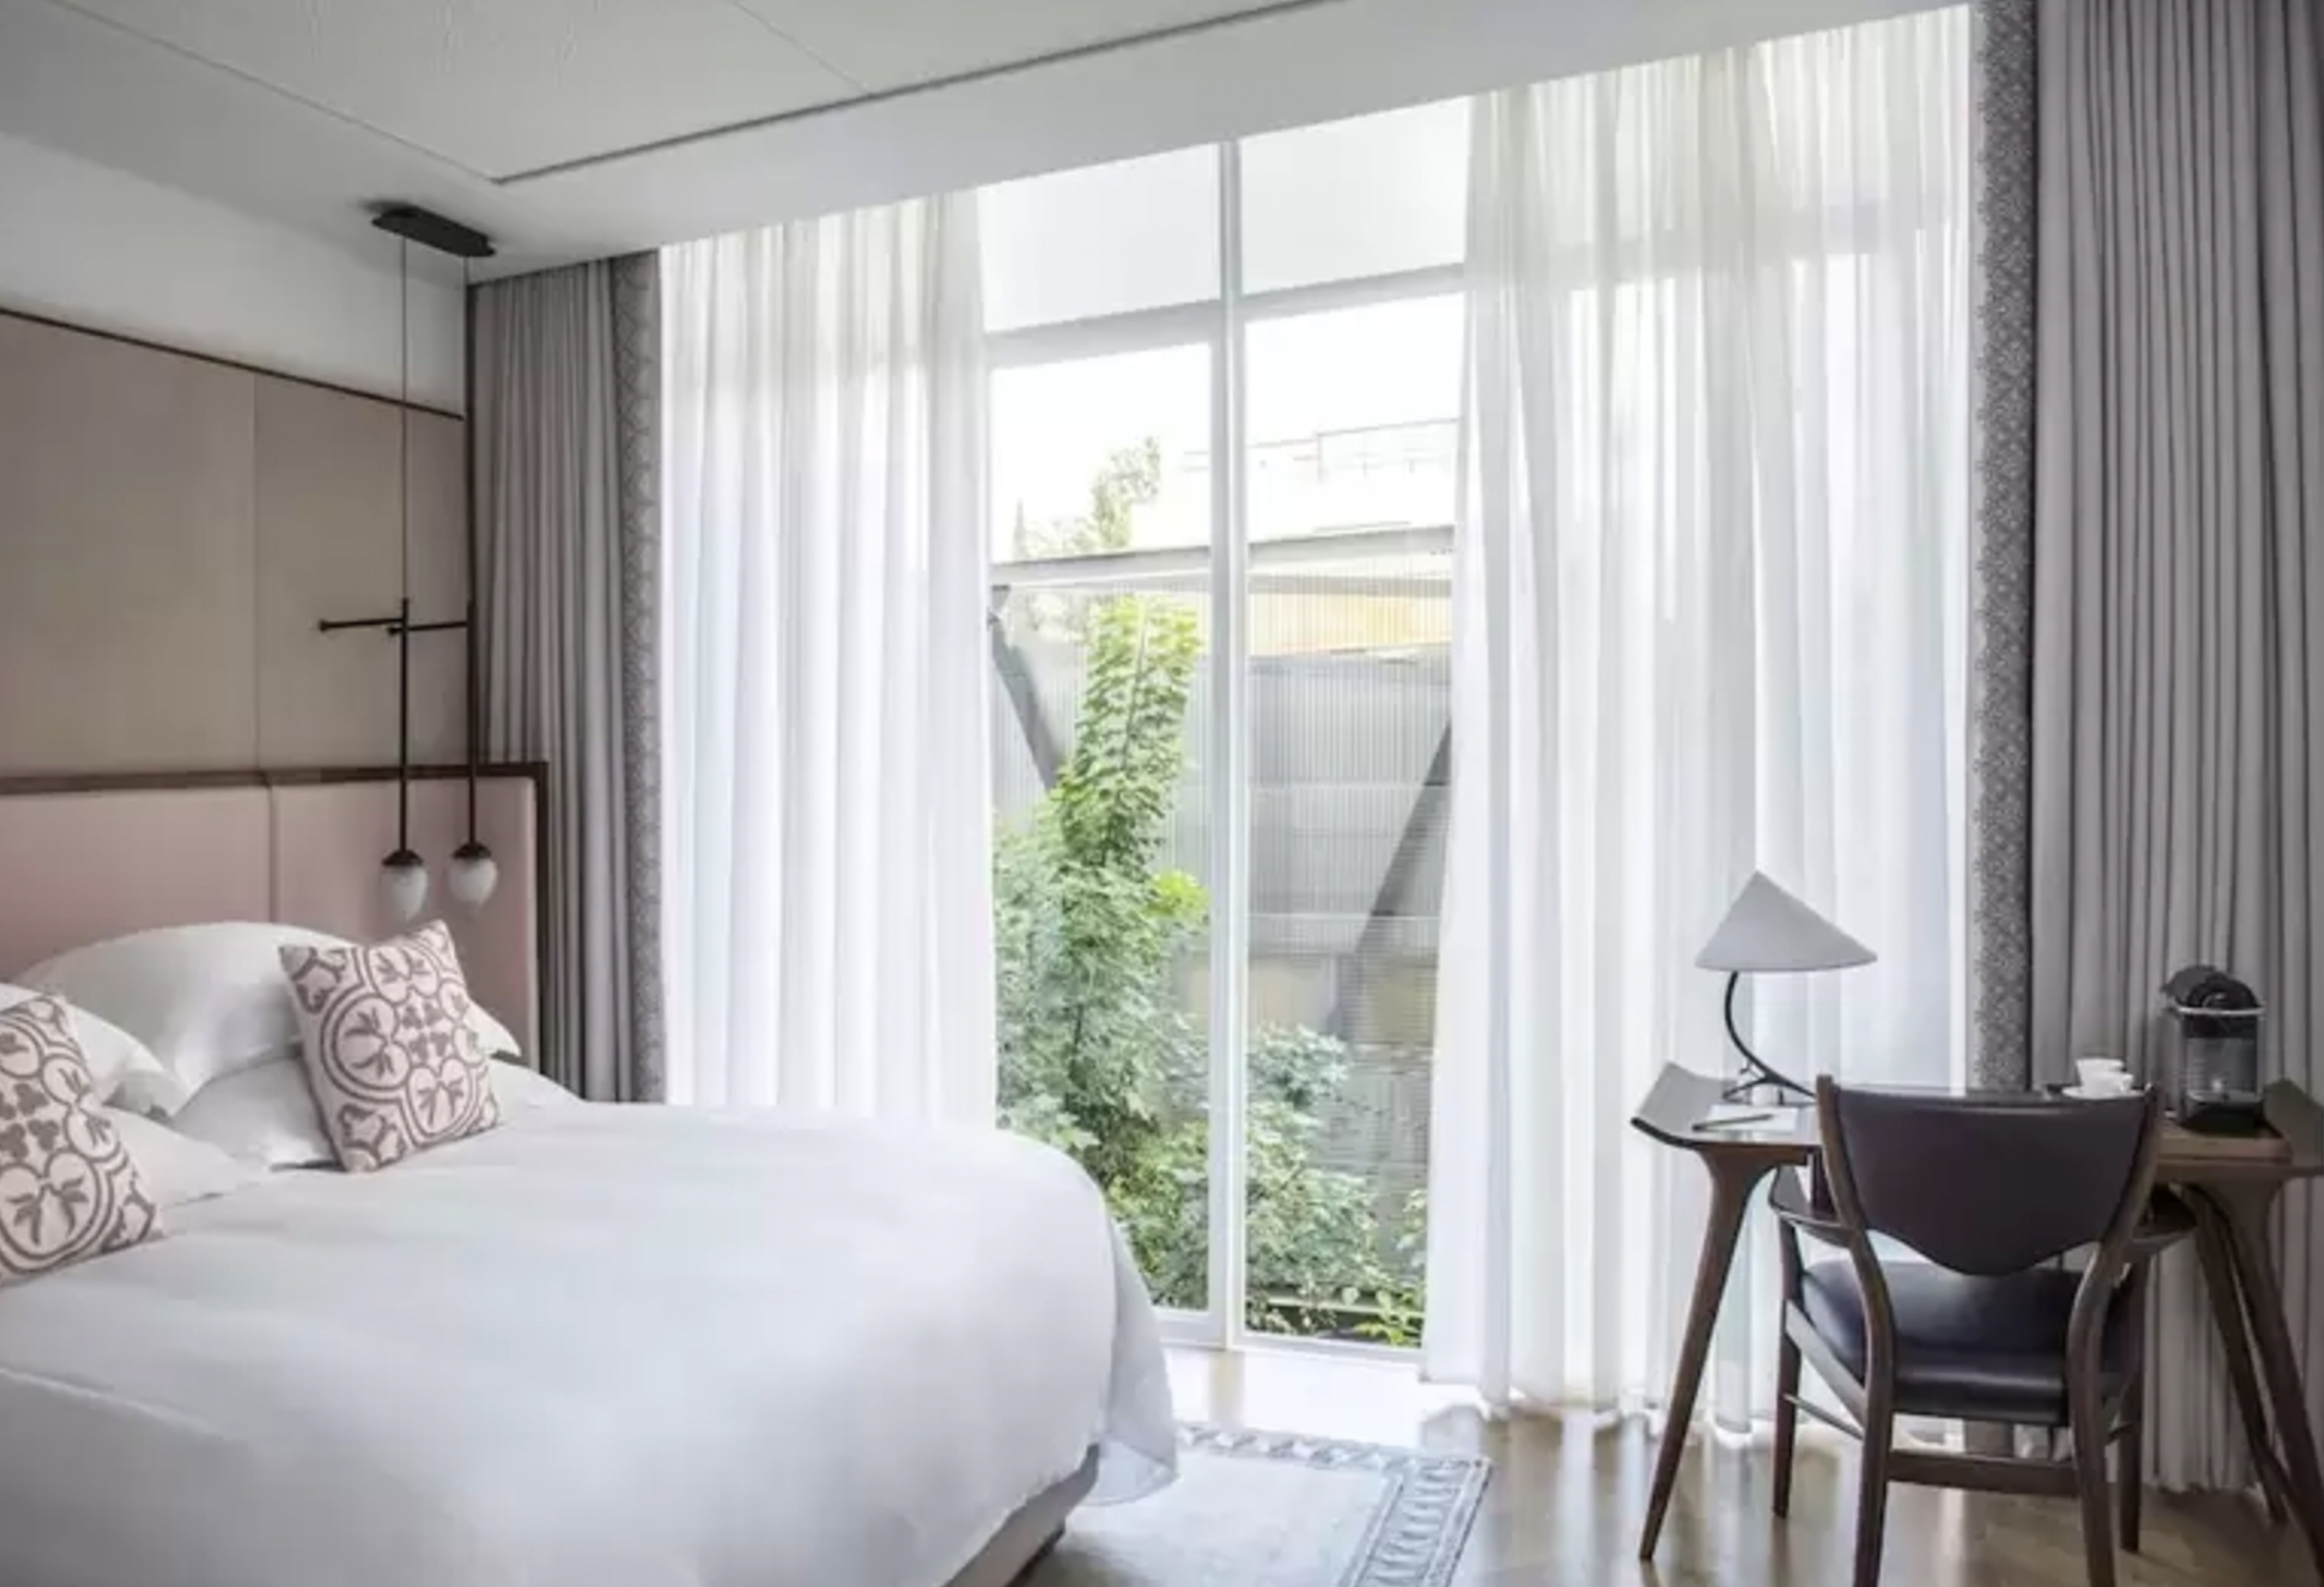 The guest rooms and suites at The Norman Tel Aviv are elegant and contemporary in design